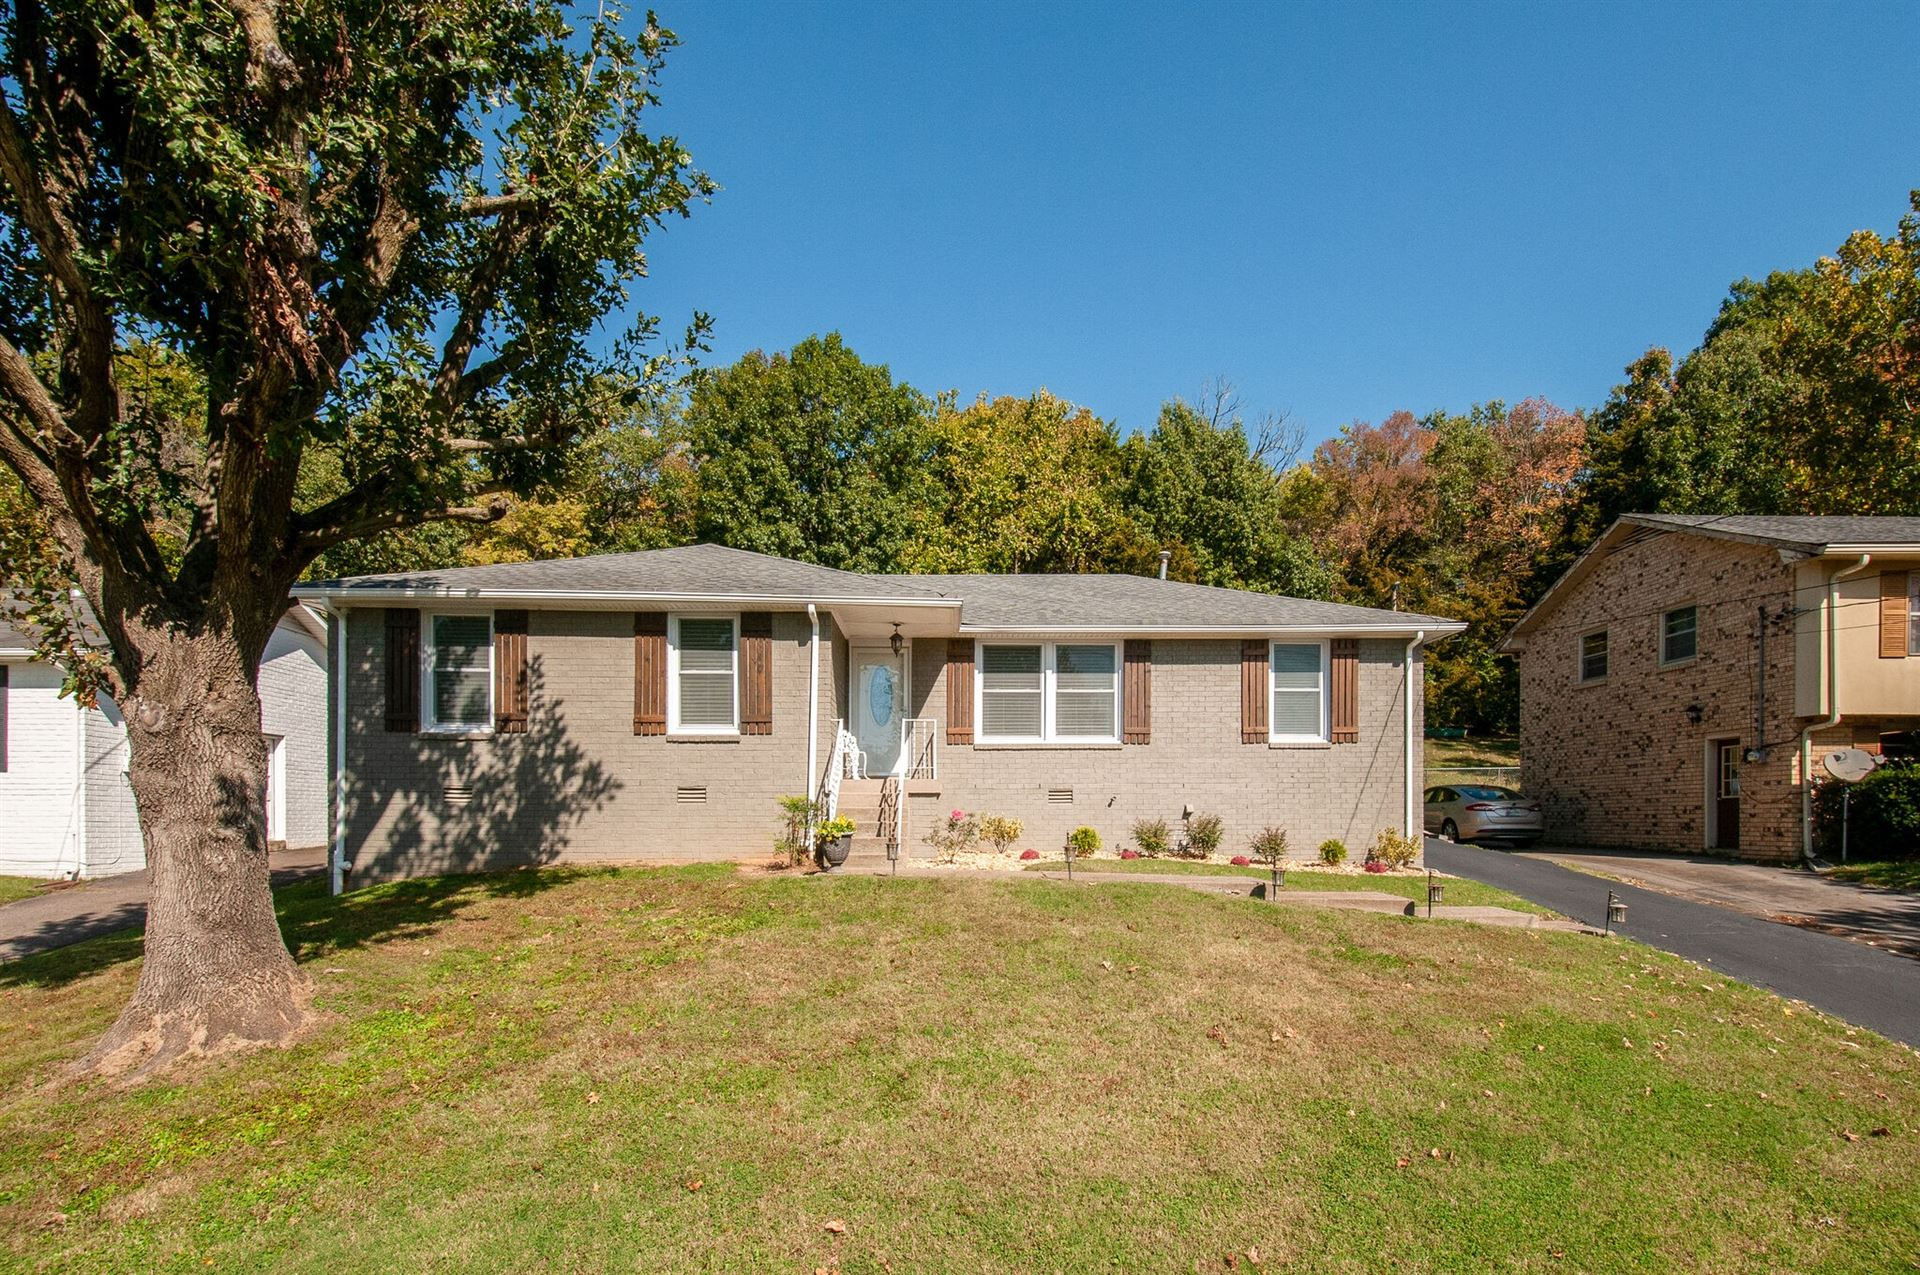 564 Huntington Pkwy, Nashville, TN 37211 - MLS#: 2201950